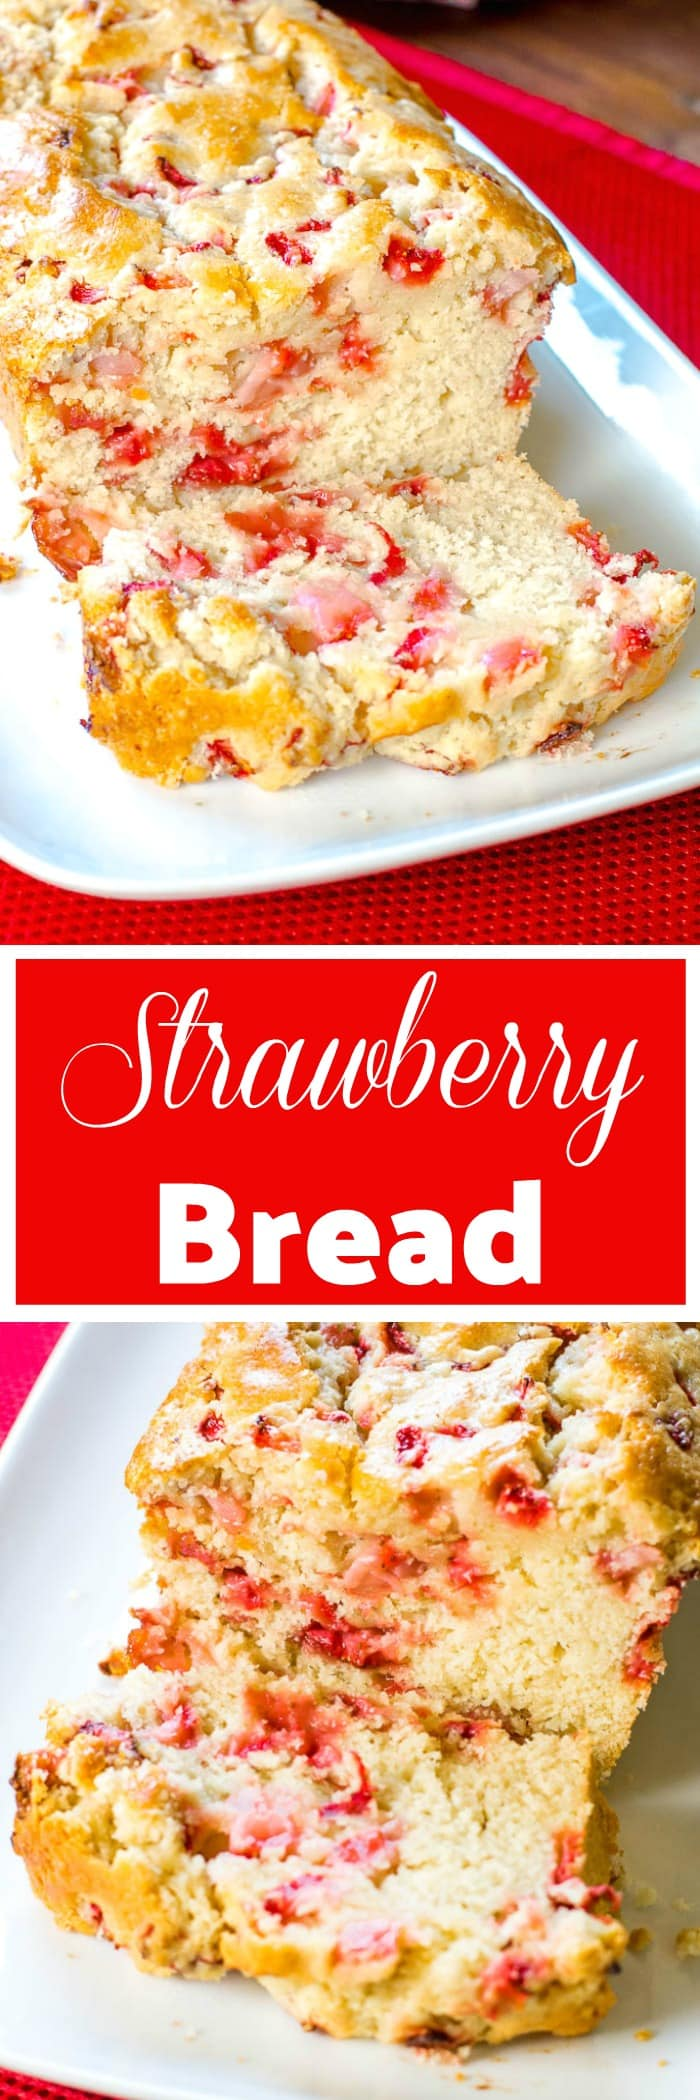 Strawberry Bread Flavor Mosaic